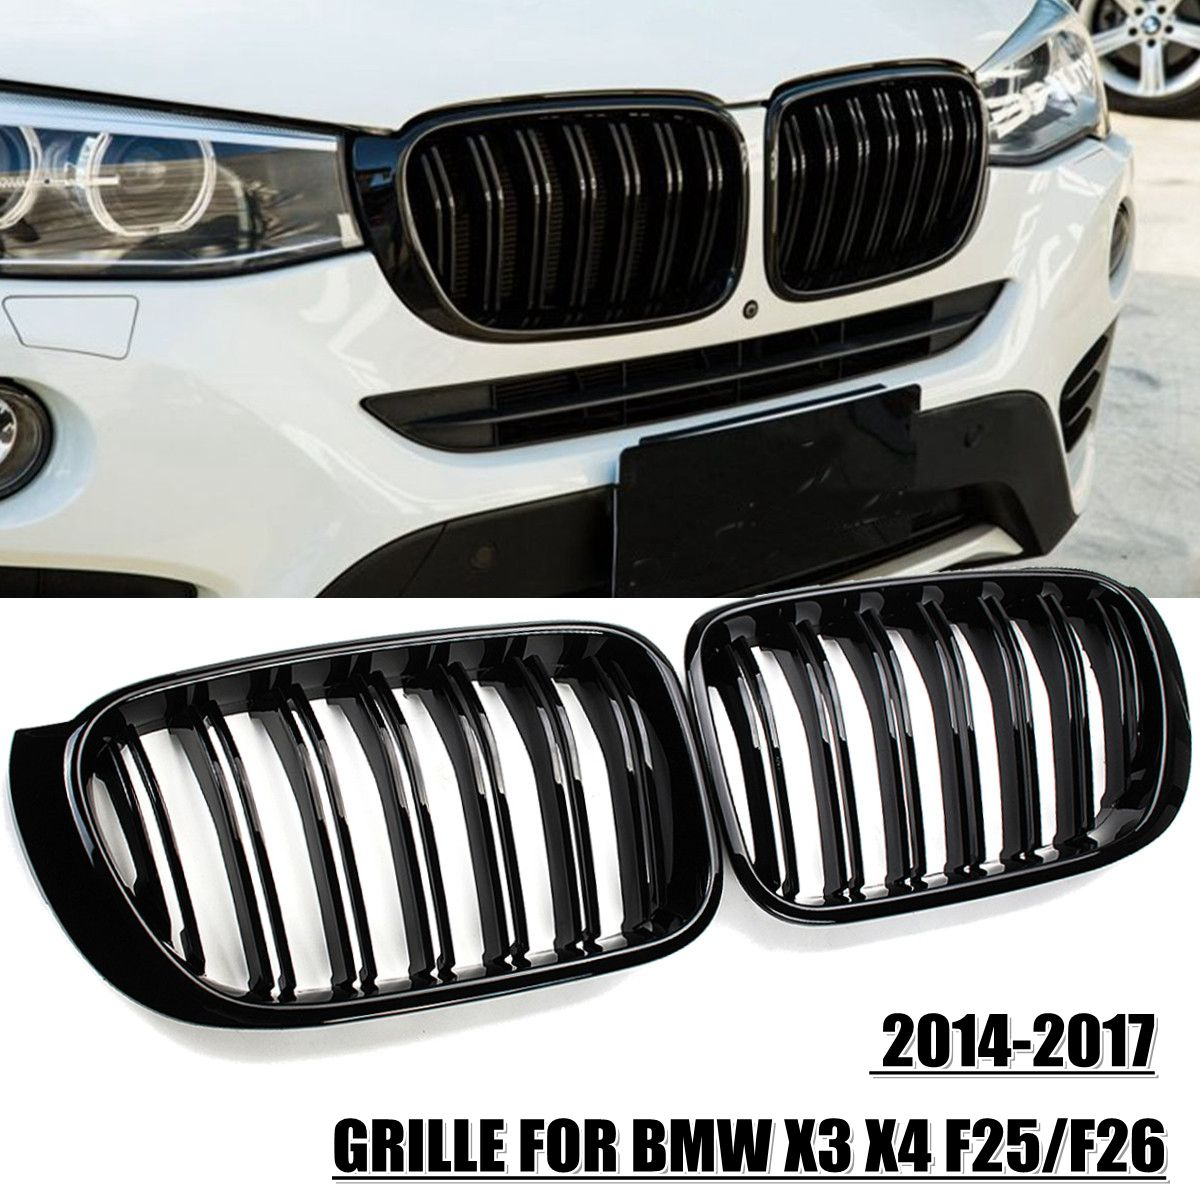 BMW X3 F25 X4 F26 X5 F15 F16 2014 2015 Chrome Interior Roof Dome mic Cover trim